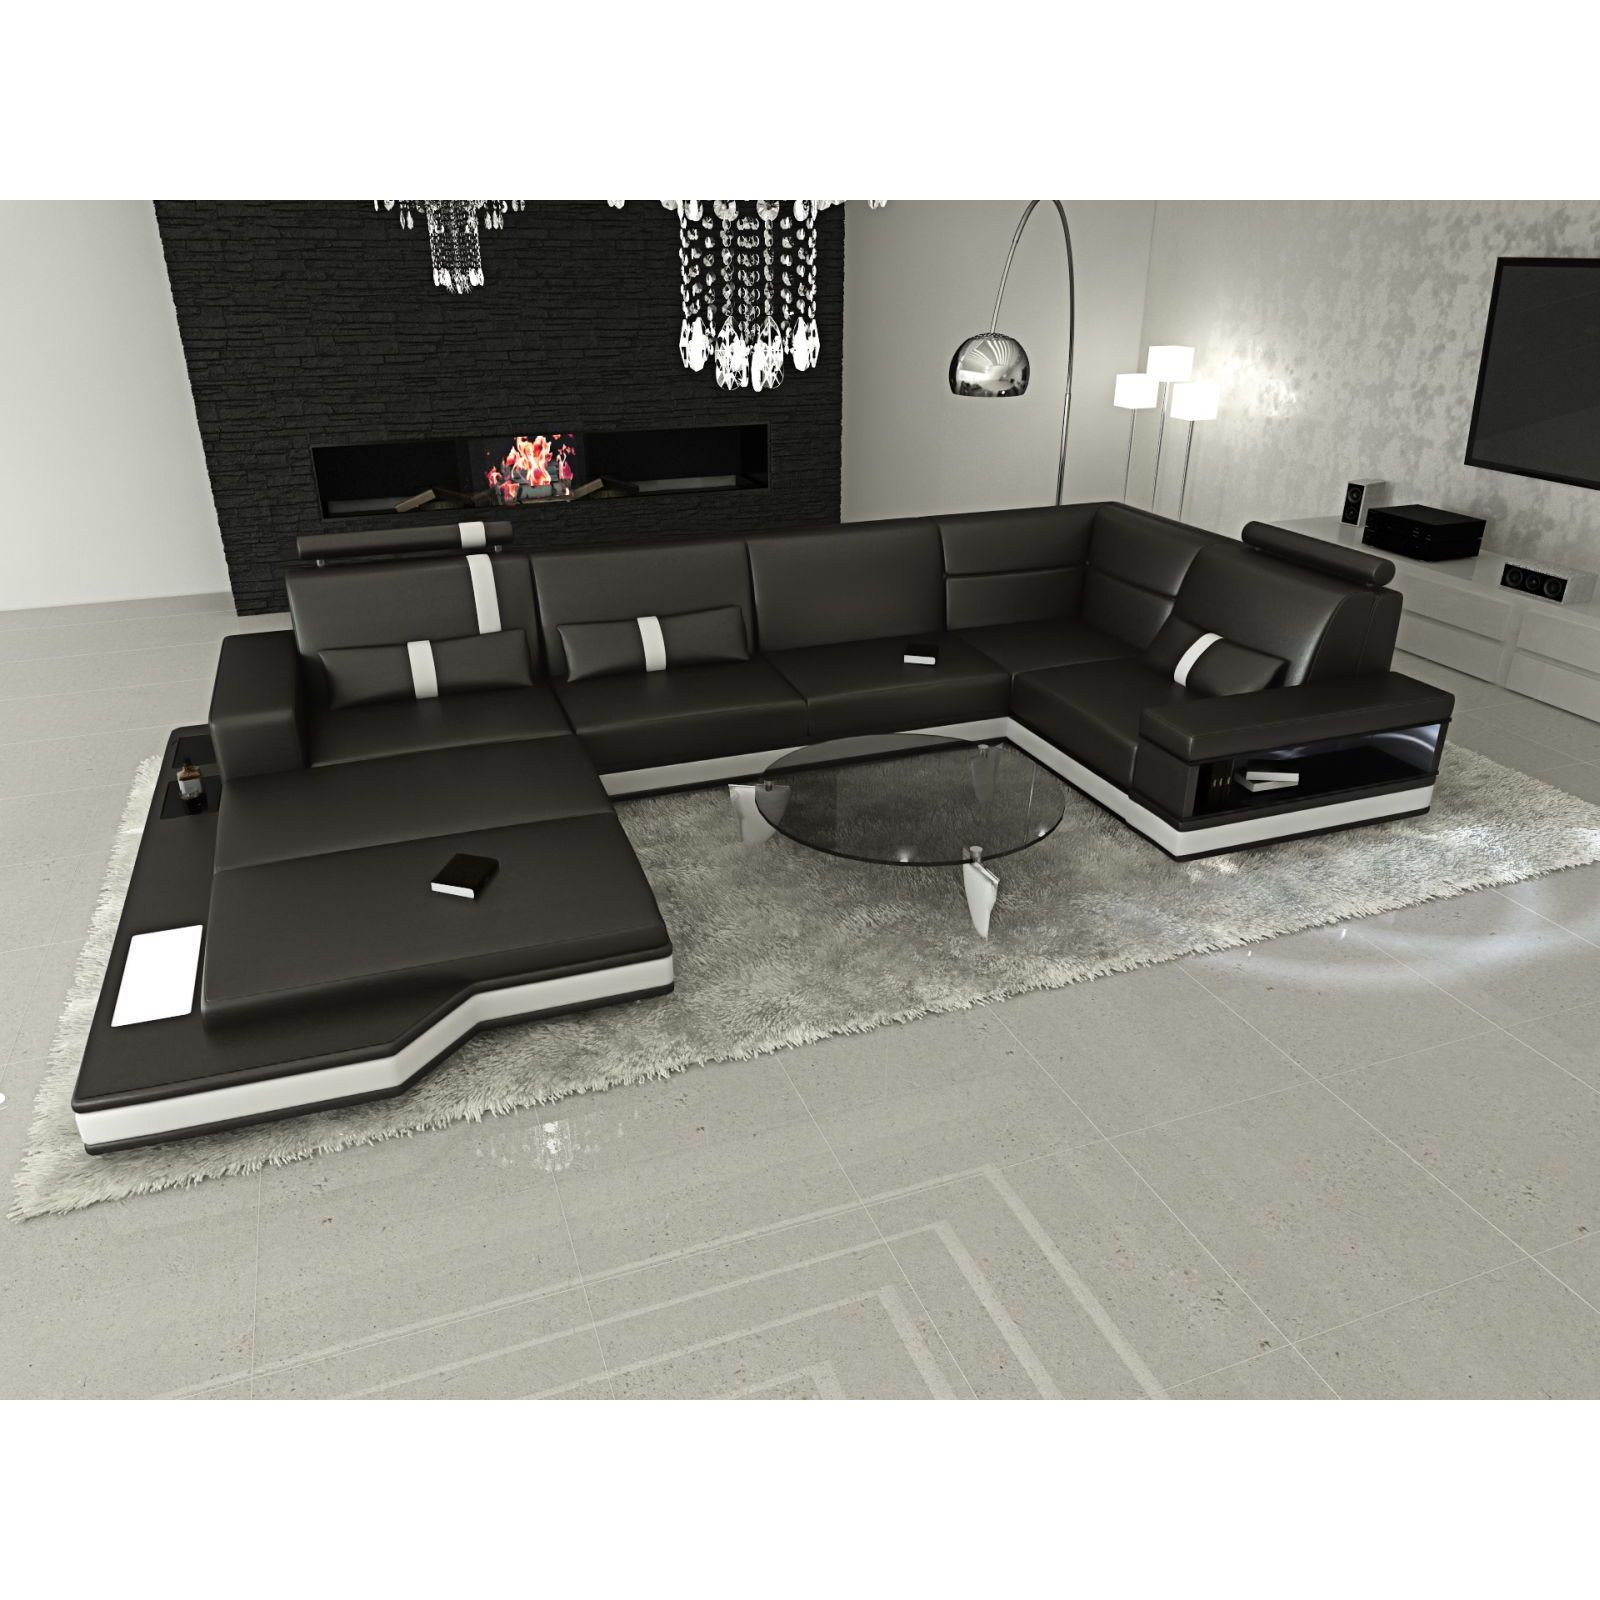 Design Modern Los Angeles Black U Shaped Sectional Sofa Free Shipping Today 13231737